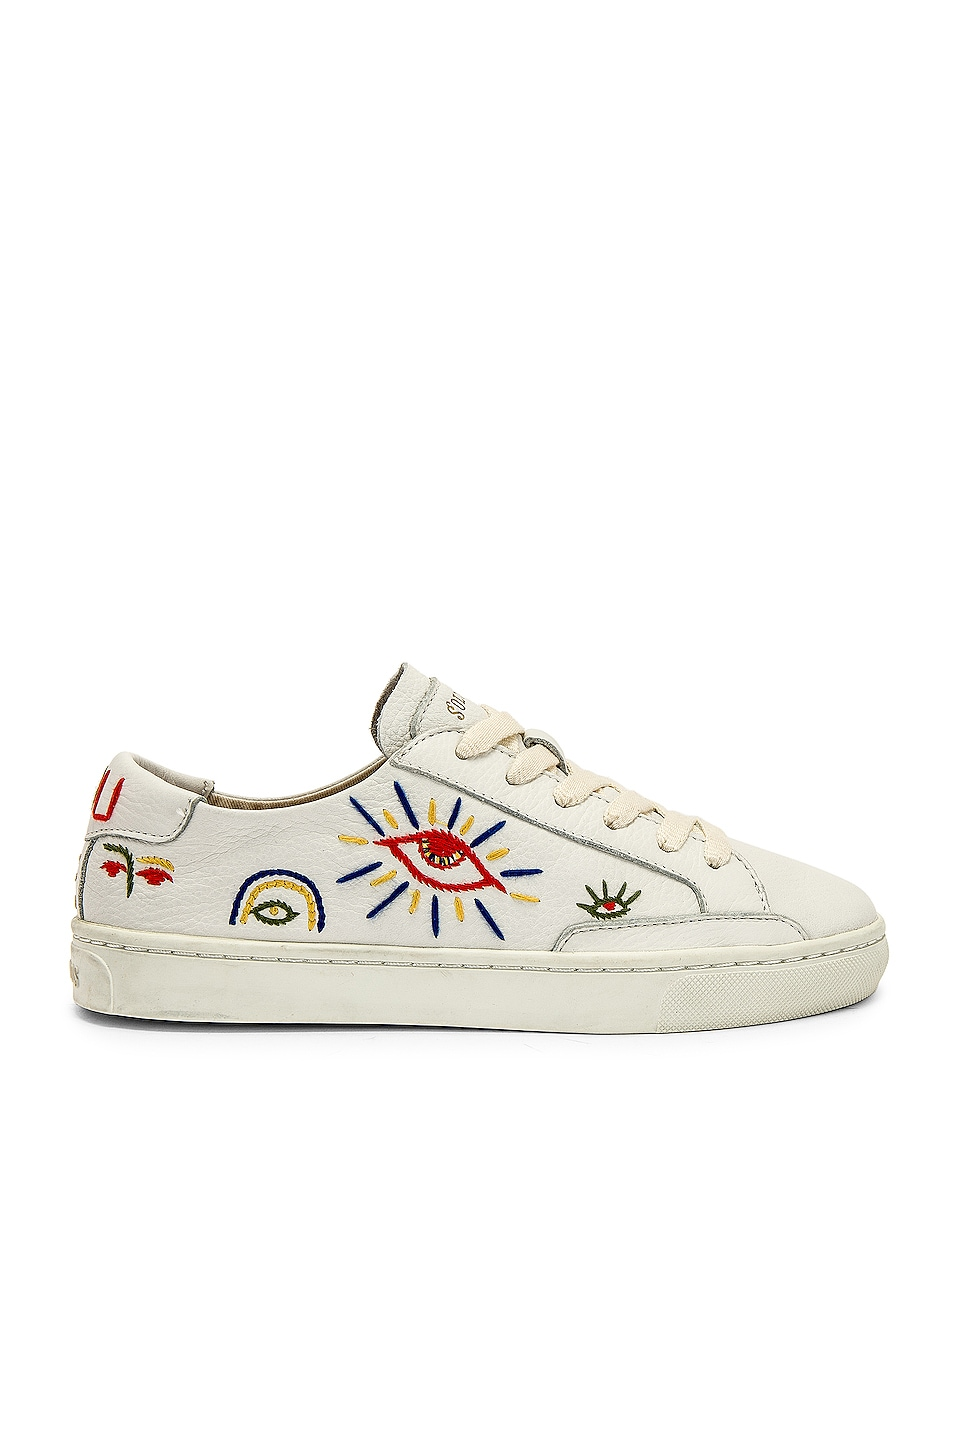 Soludos Ibiza Look Sneaker in White